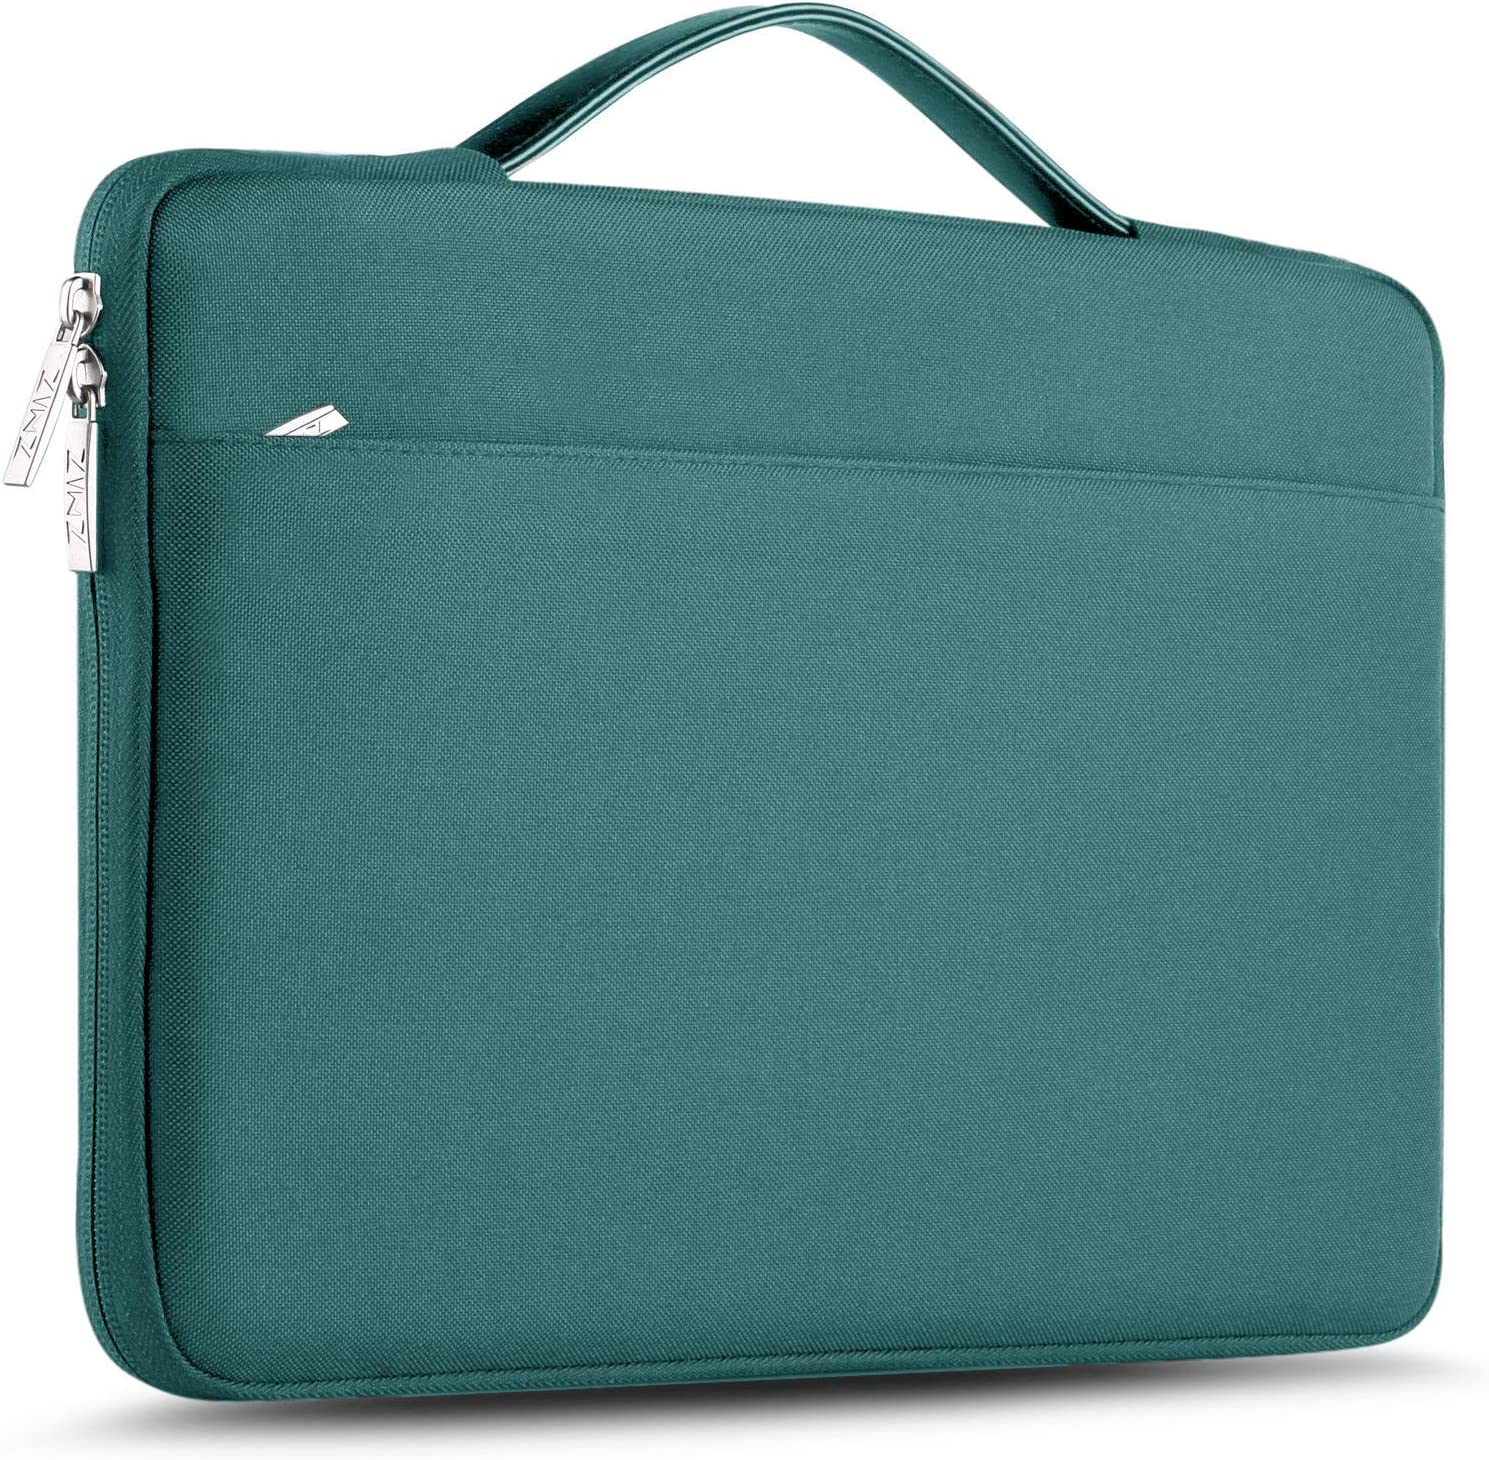 "ZINZ Laptop Sleeve 15 15.6 16 Inch Case Briefcase, Compatible MacBook Pro 16 15.4 inch, Surface Book 2/1 15"" Super Slim Spill-Resistant Handbag for Most Popular 15""-16"" Notebooks, Dark Green"